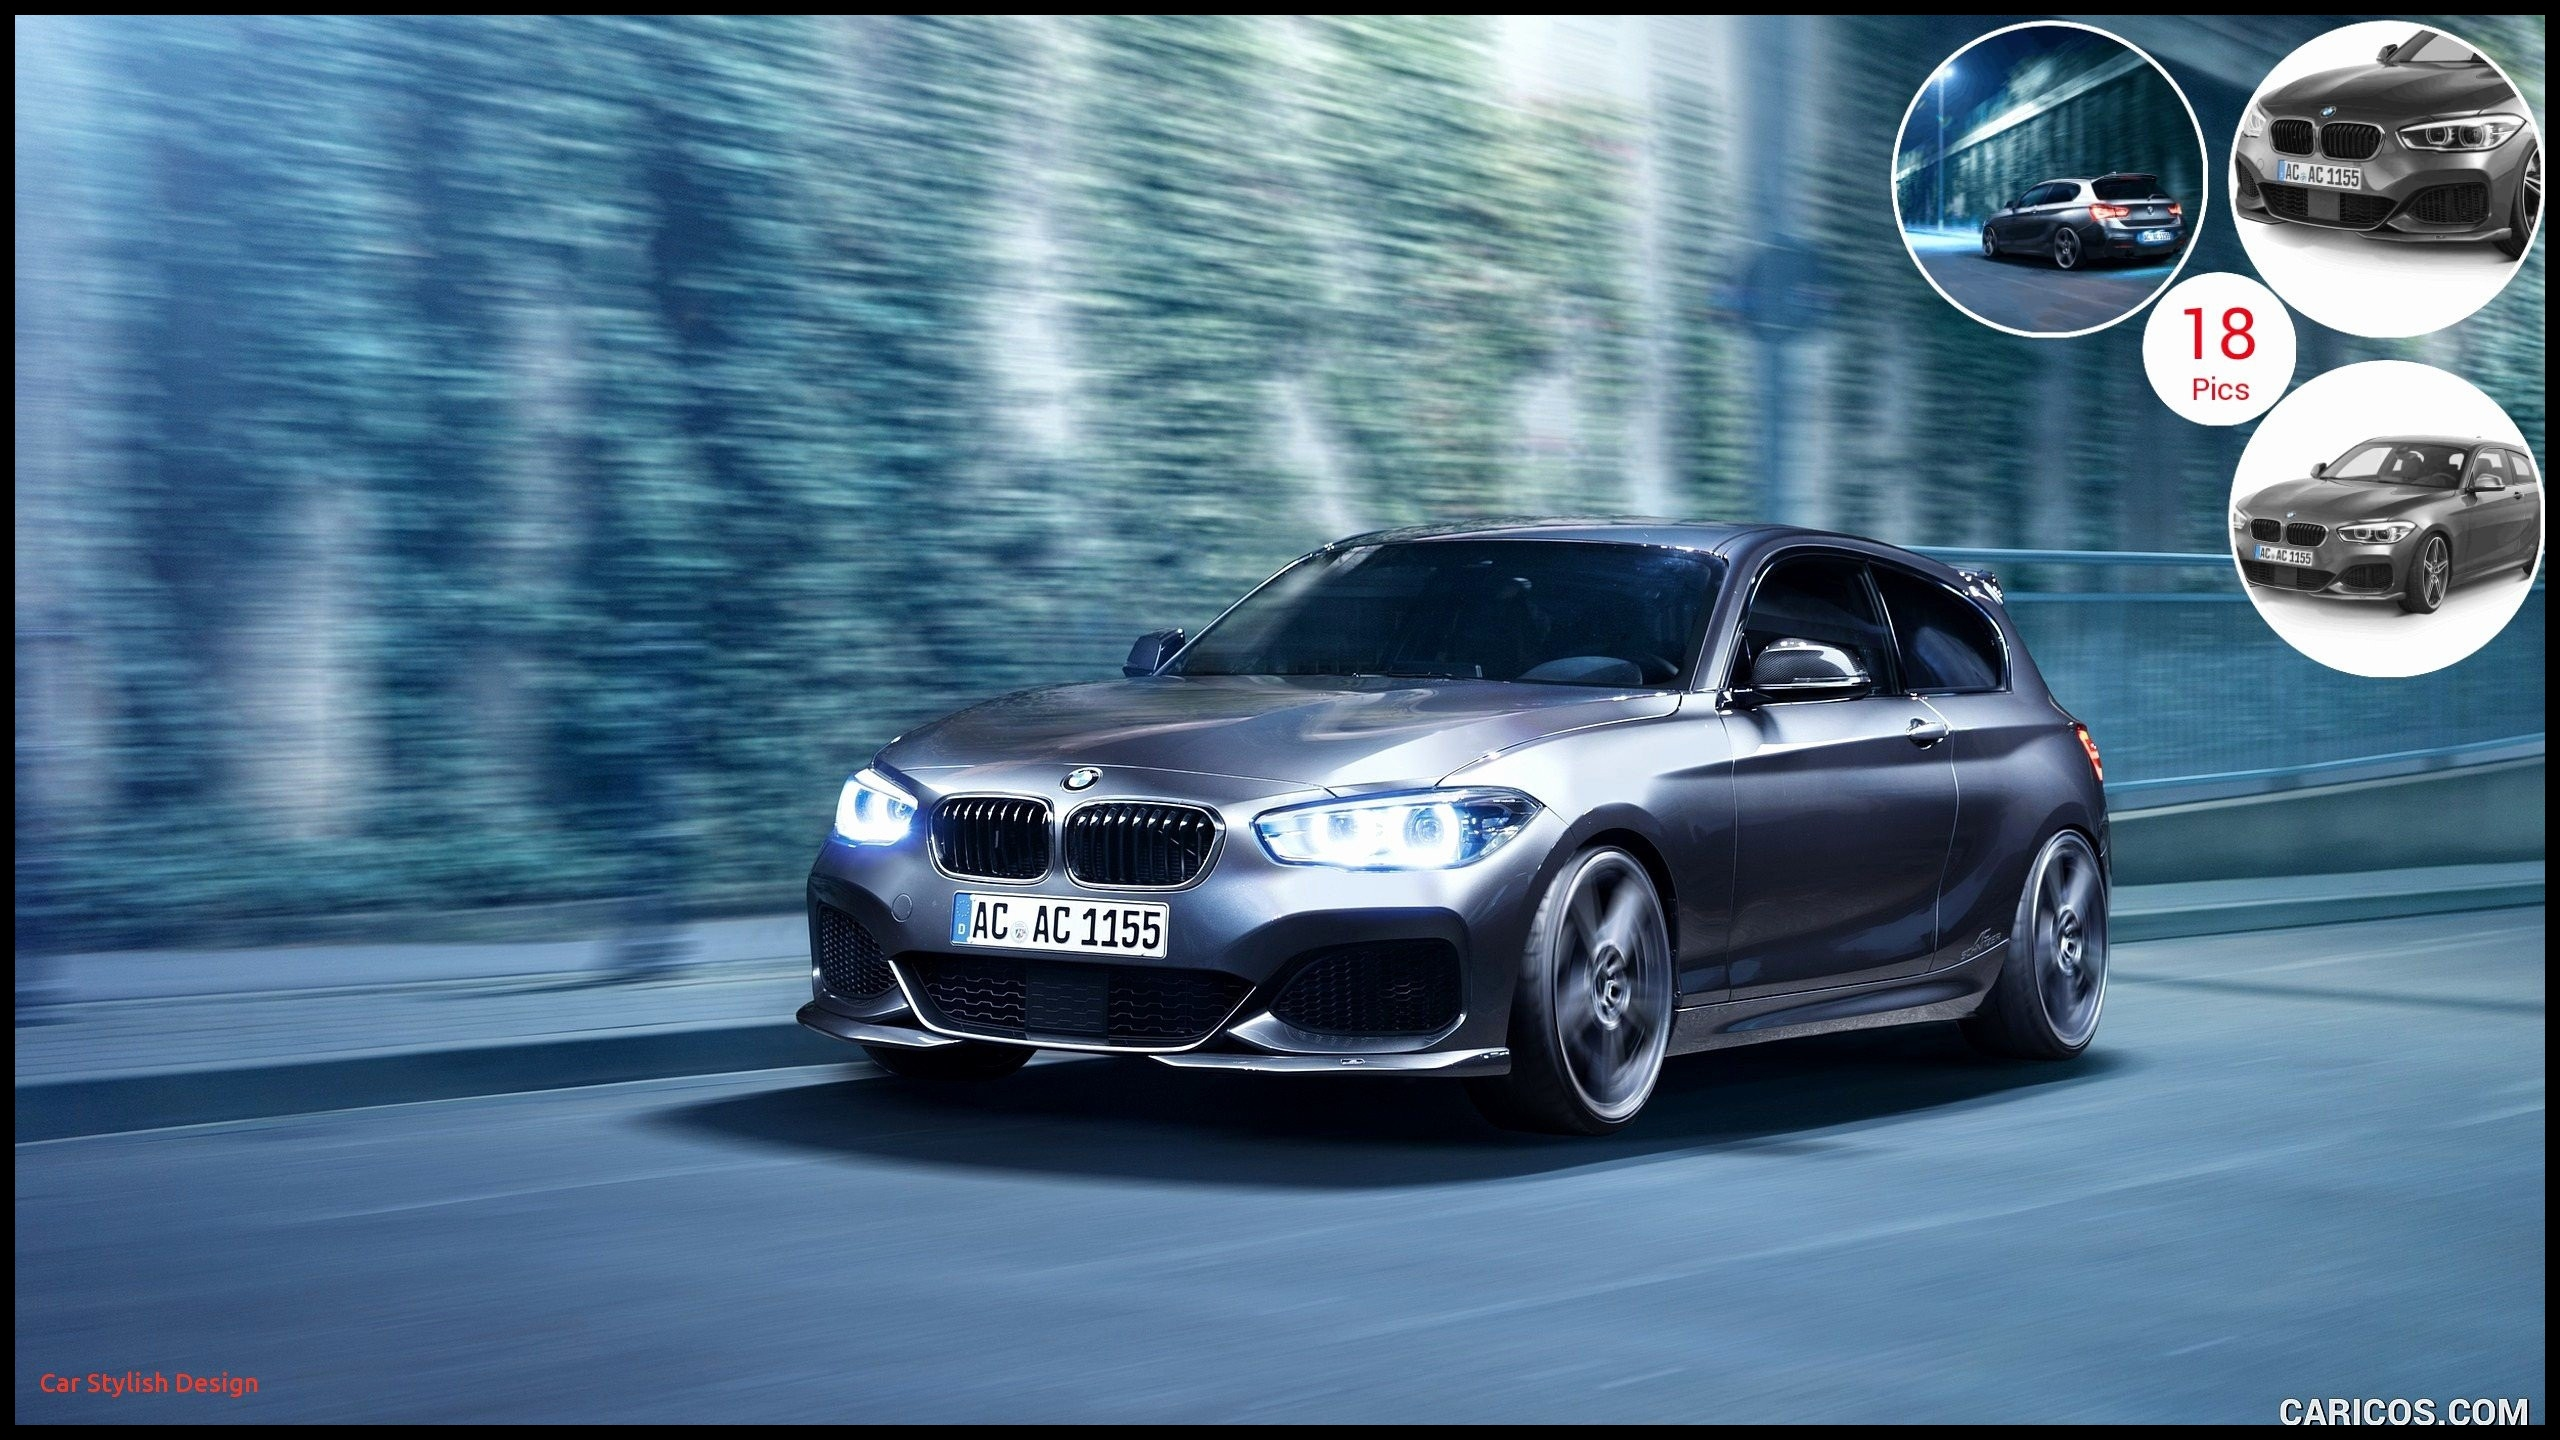 Bmw Car Beautiful Elegant Ac Schnitzer Bmw Z4 Acz4 5 0d Car Hdtv Bmw 645 Wallpaper